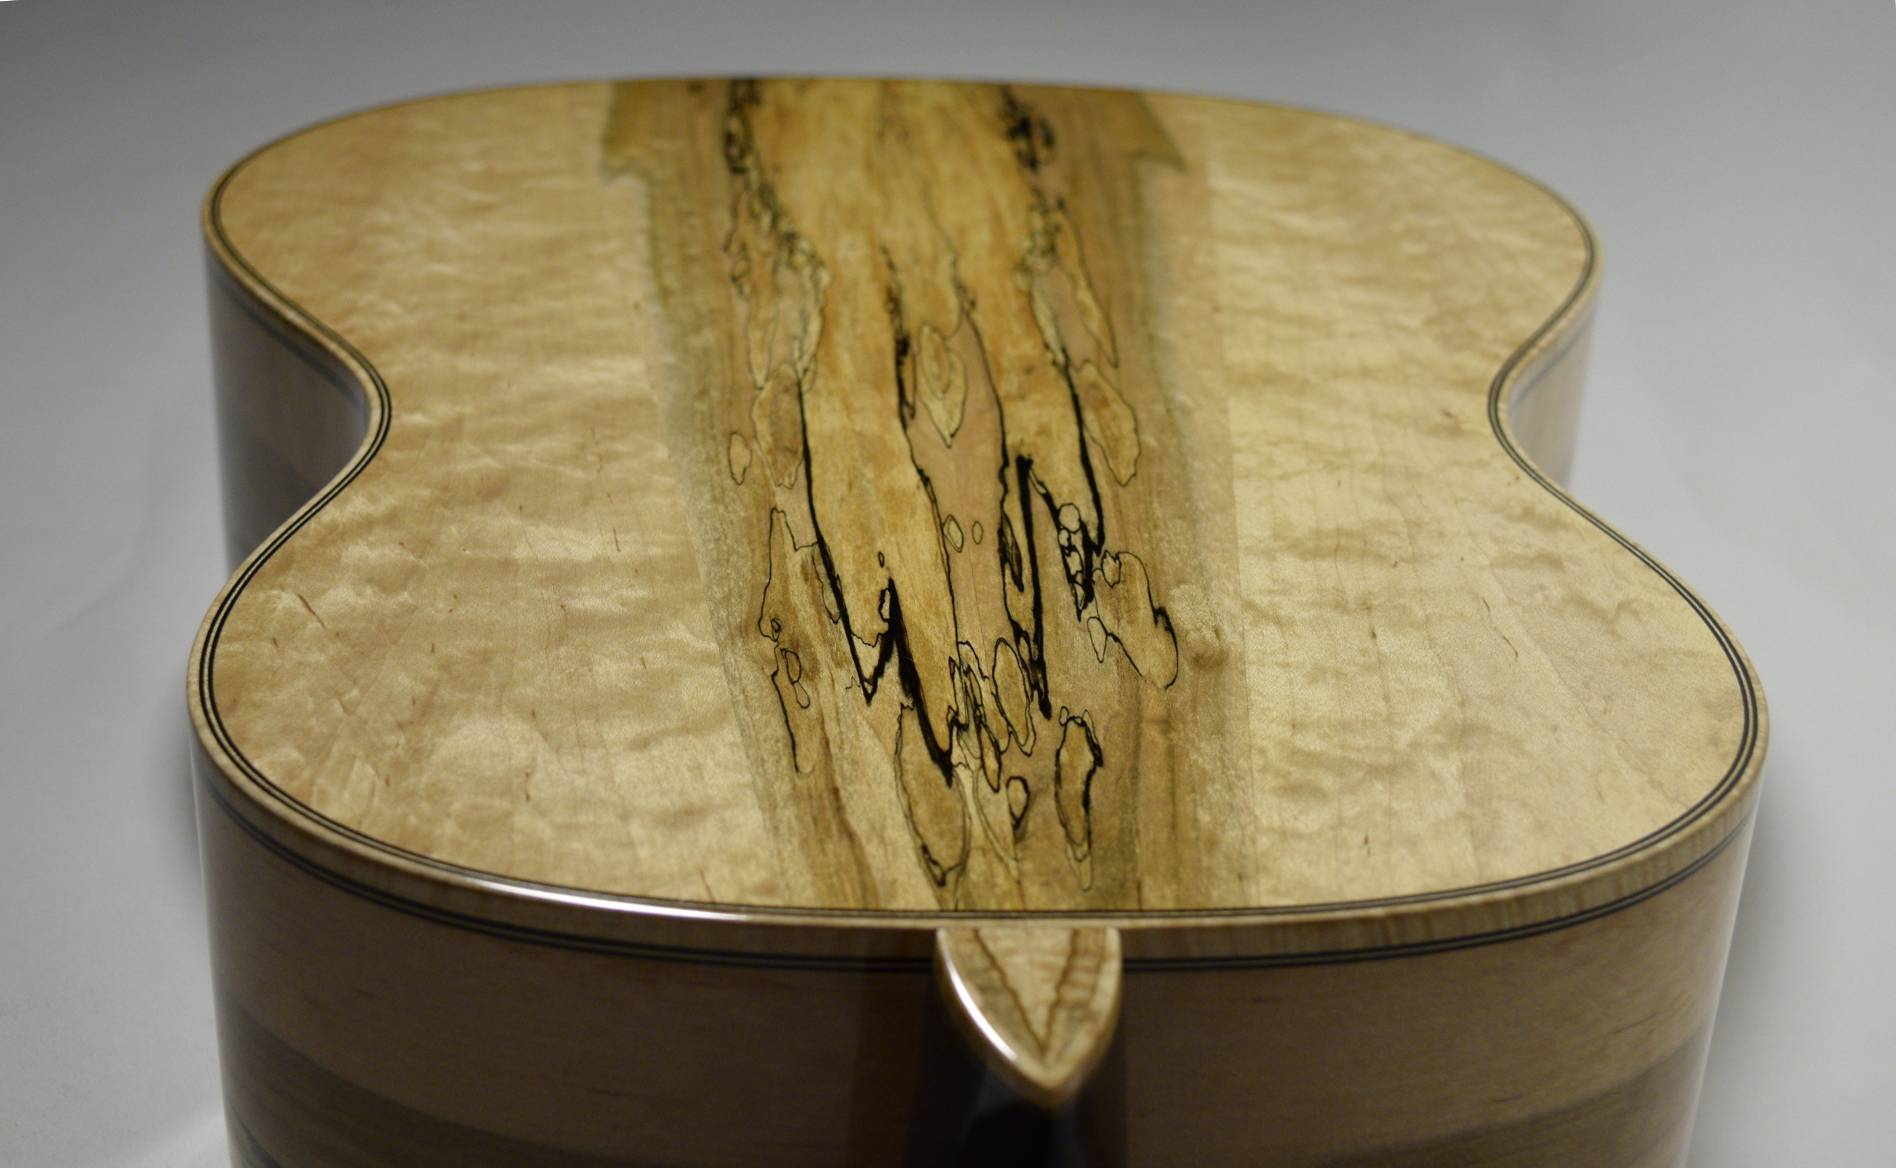 The heal cap has a book-matched, ambrosia maple inlay